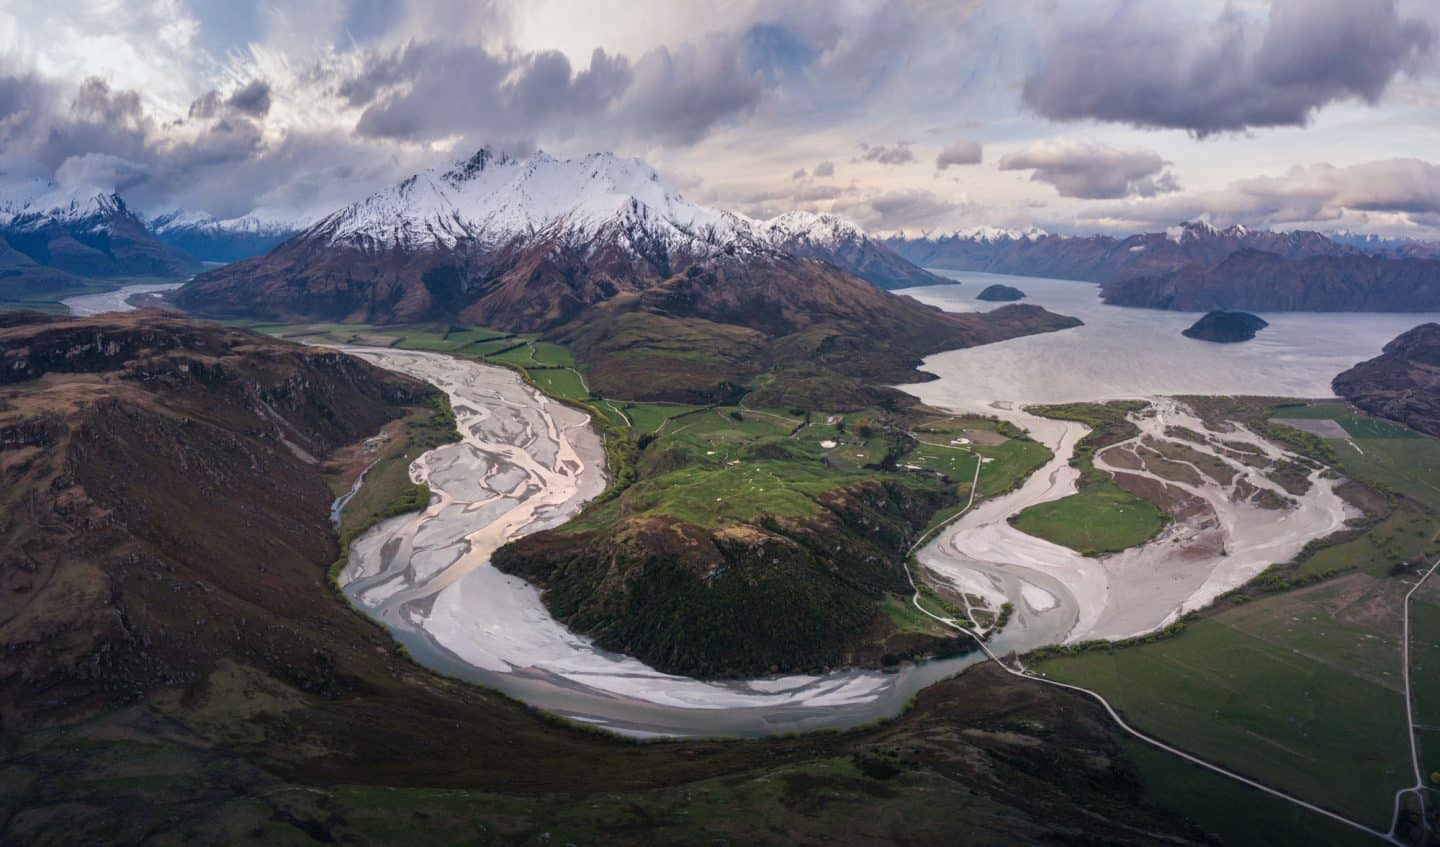 The Matukituki River Viewpoint is a New Zealand hidden gem that isn't even on the map!